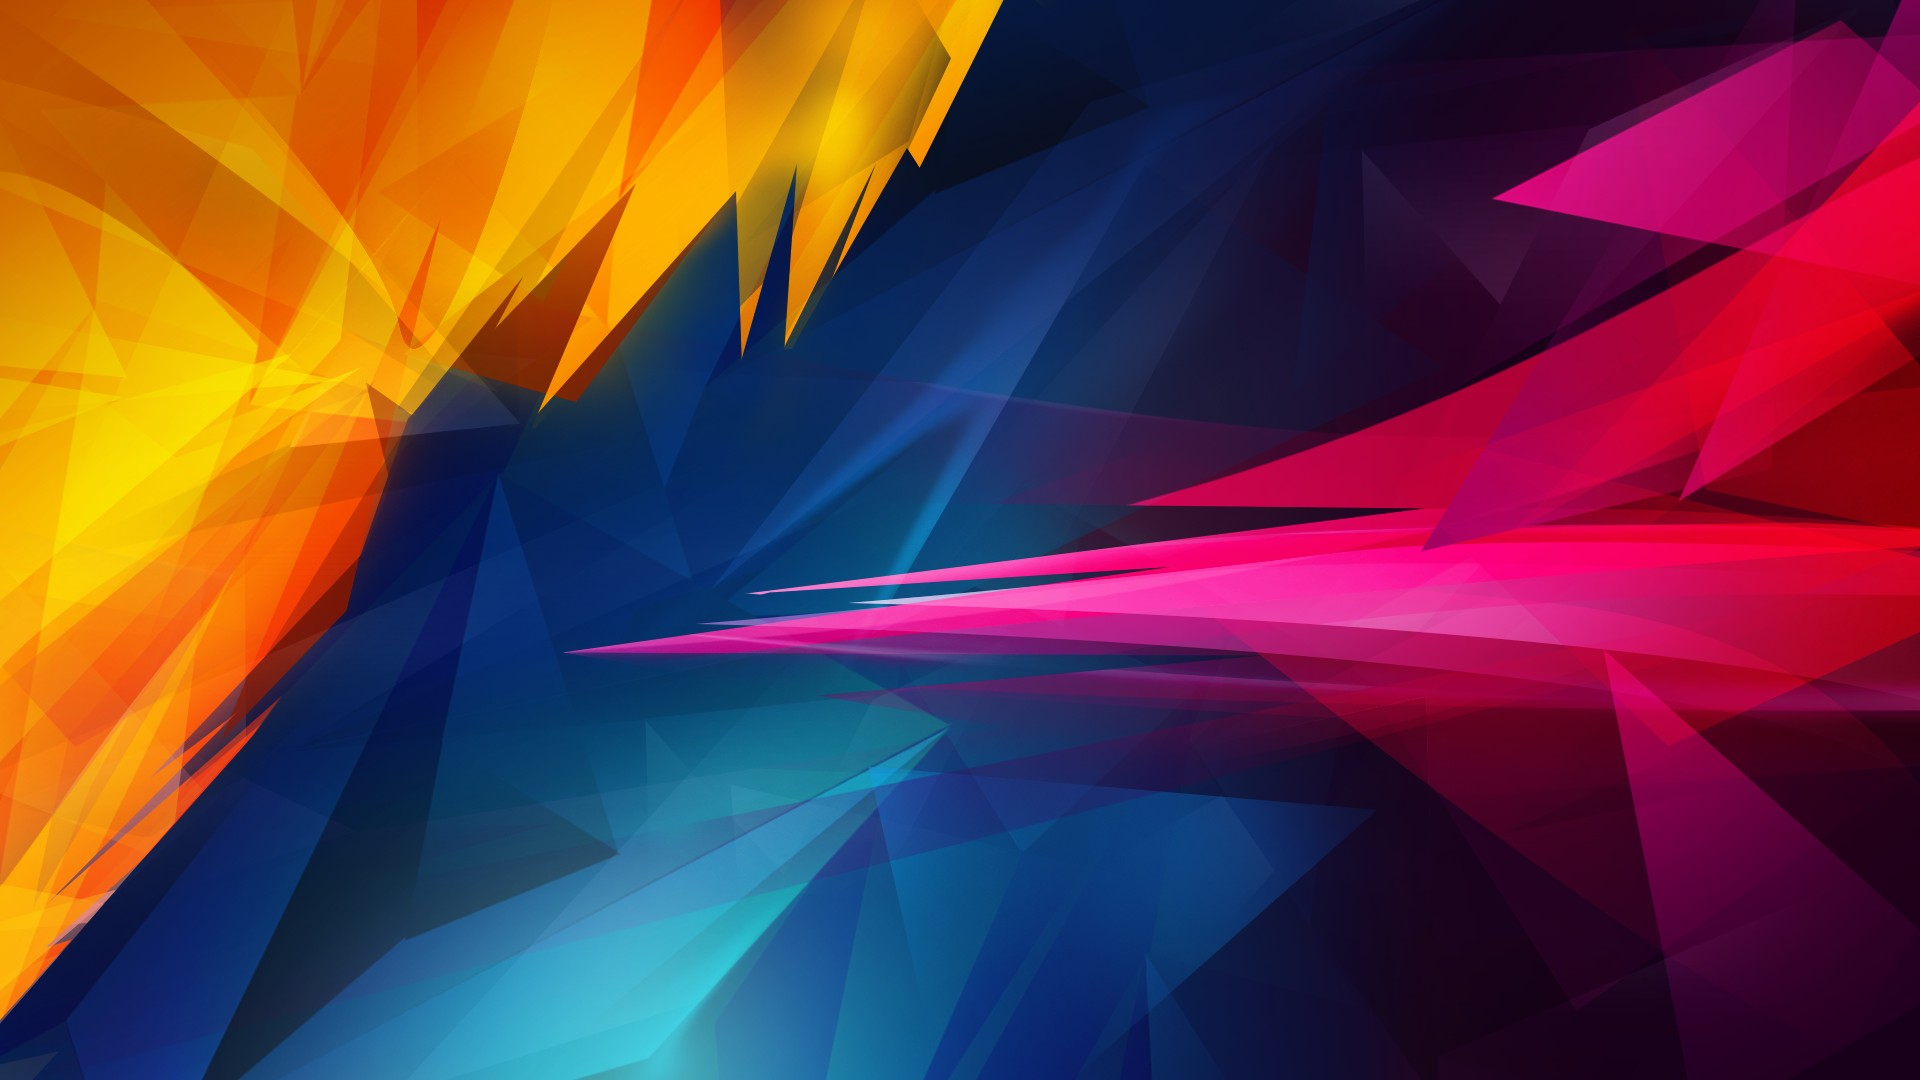 Wallpaper Abstract ·① Download Free Stunning HD